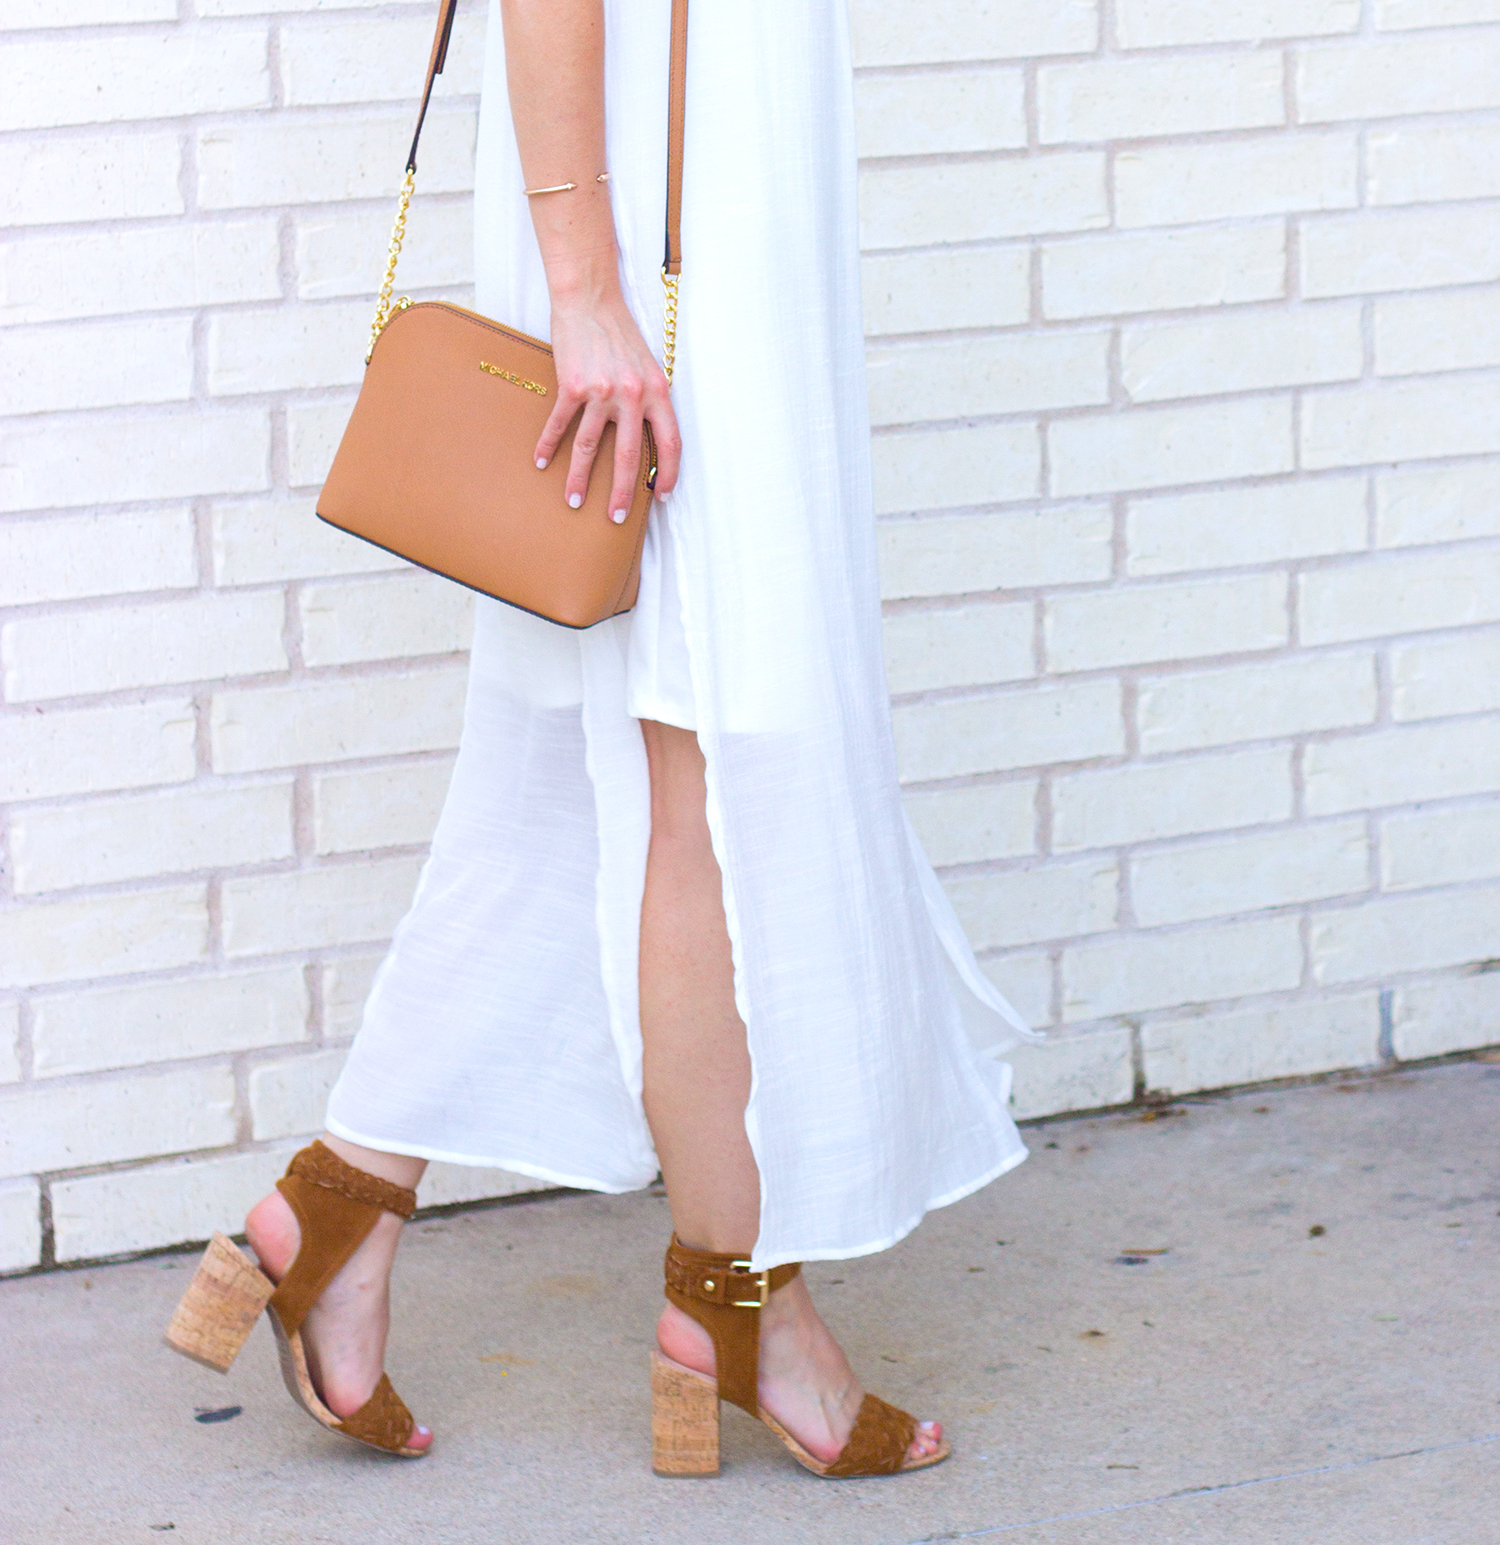 livvyland-blog-olivia-watson-white-sheer-midi-dress-painted-threads-braided-sandal-heels-austin-texas-fashion-blogger-rose-gold-kendra-scott-prada-cateye-sunglasses-spring-outfit-11